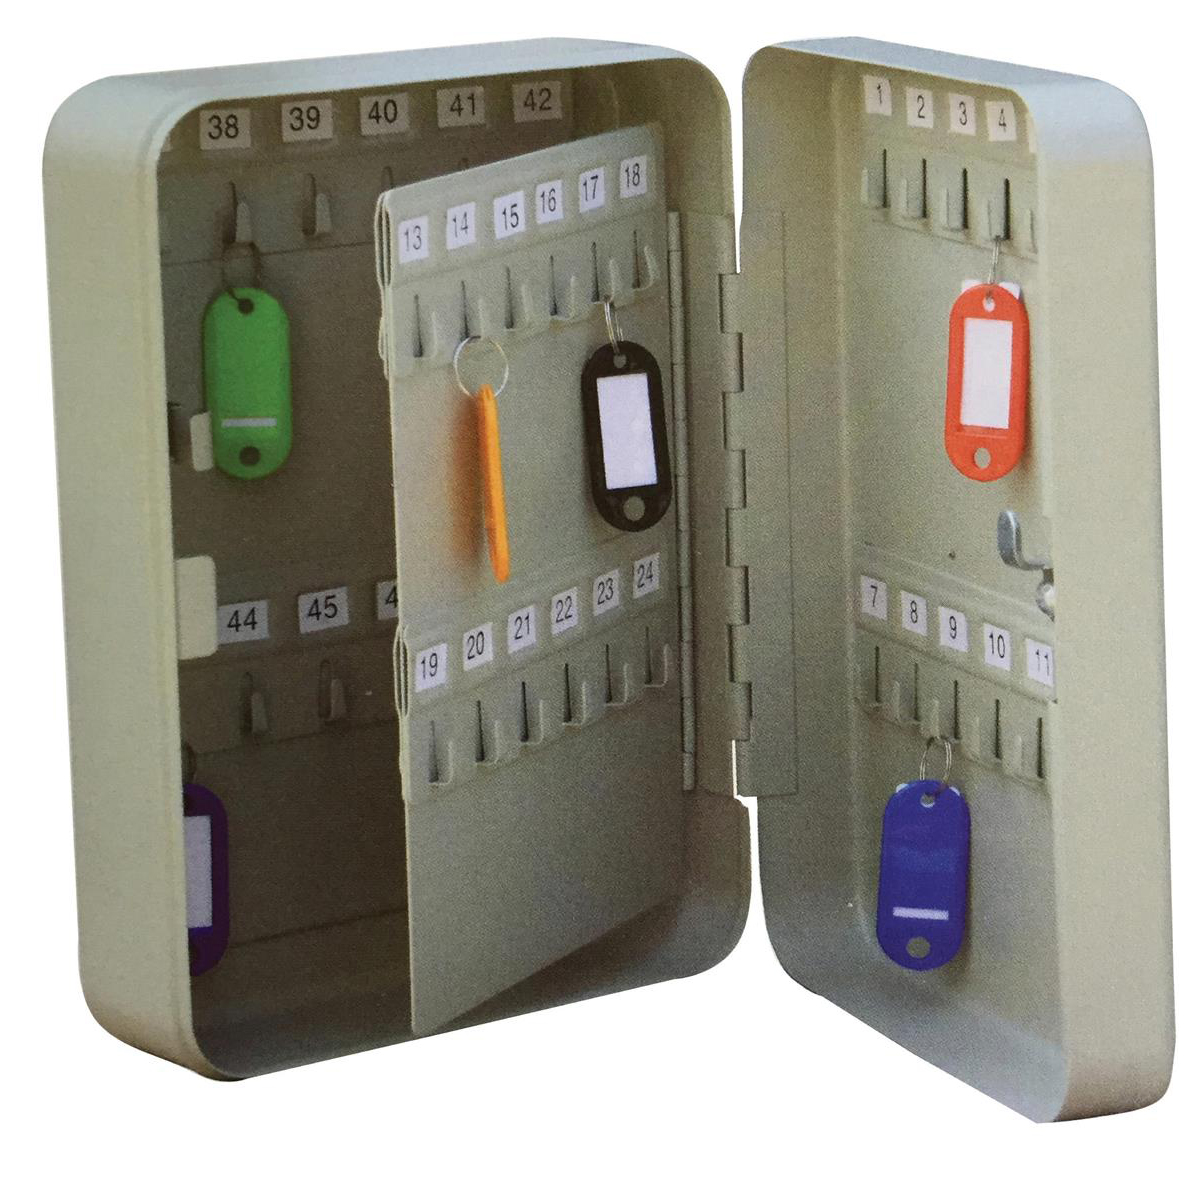 Image for 5 Star Facilities Key Cabinet Steel Lockable with Wall Fixings Holds 48 Keys W180xD80xH250mm